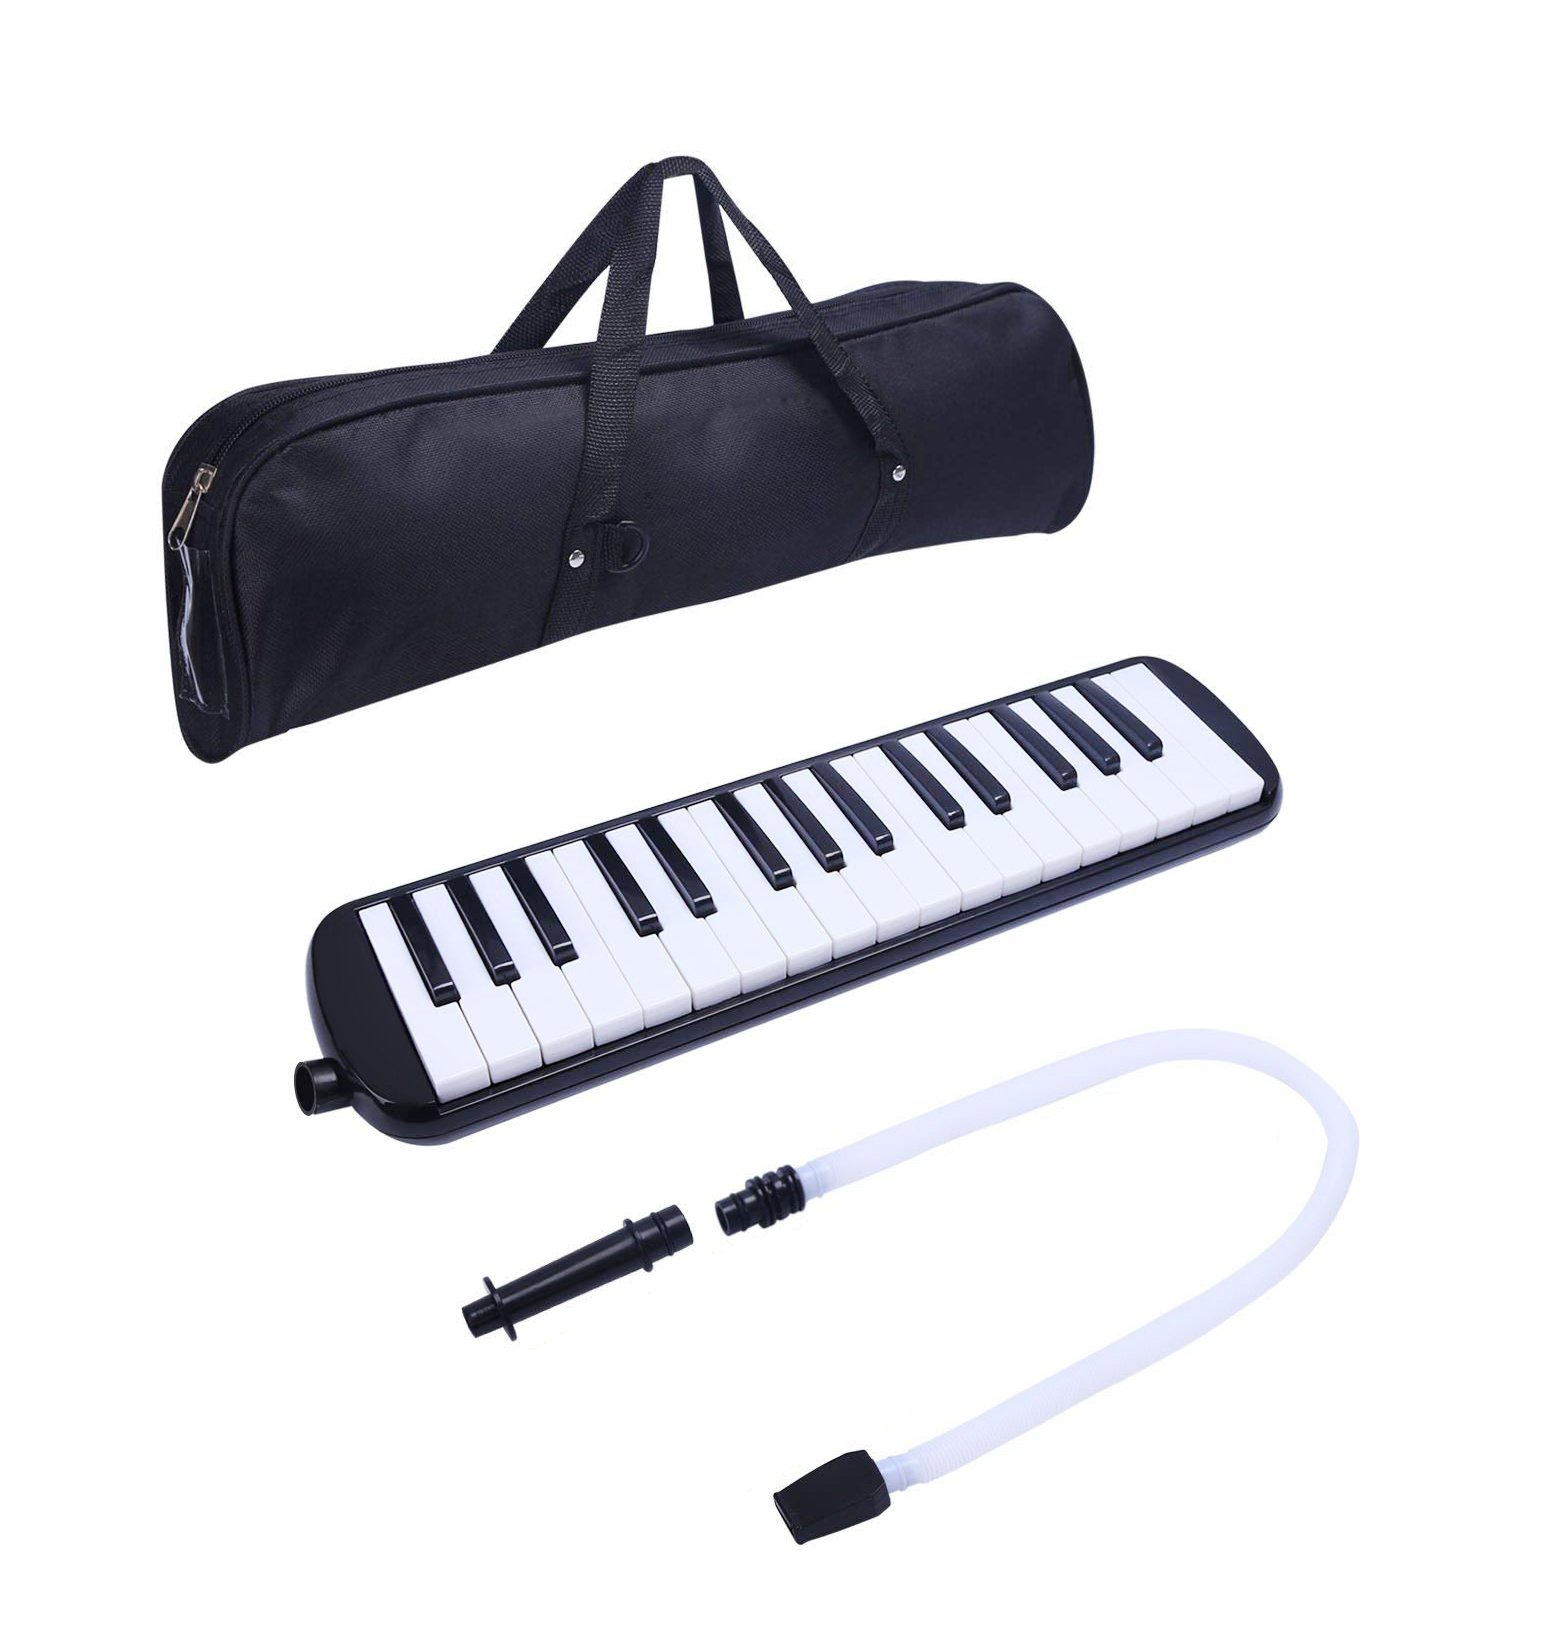 Timiy 32 Keys Melodica Piano with Mouthpieces Tube & Carrying Bag Musical Instrument Black